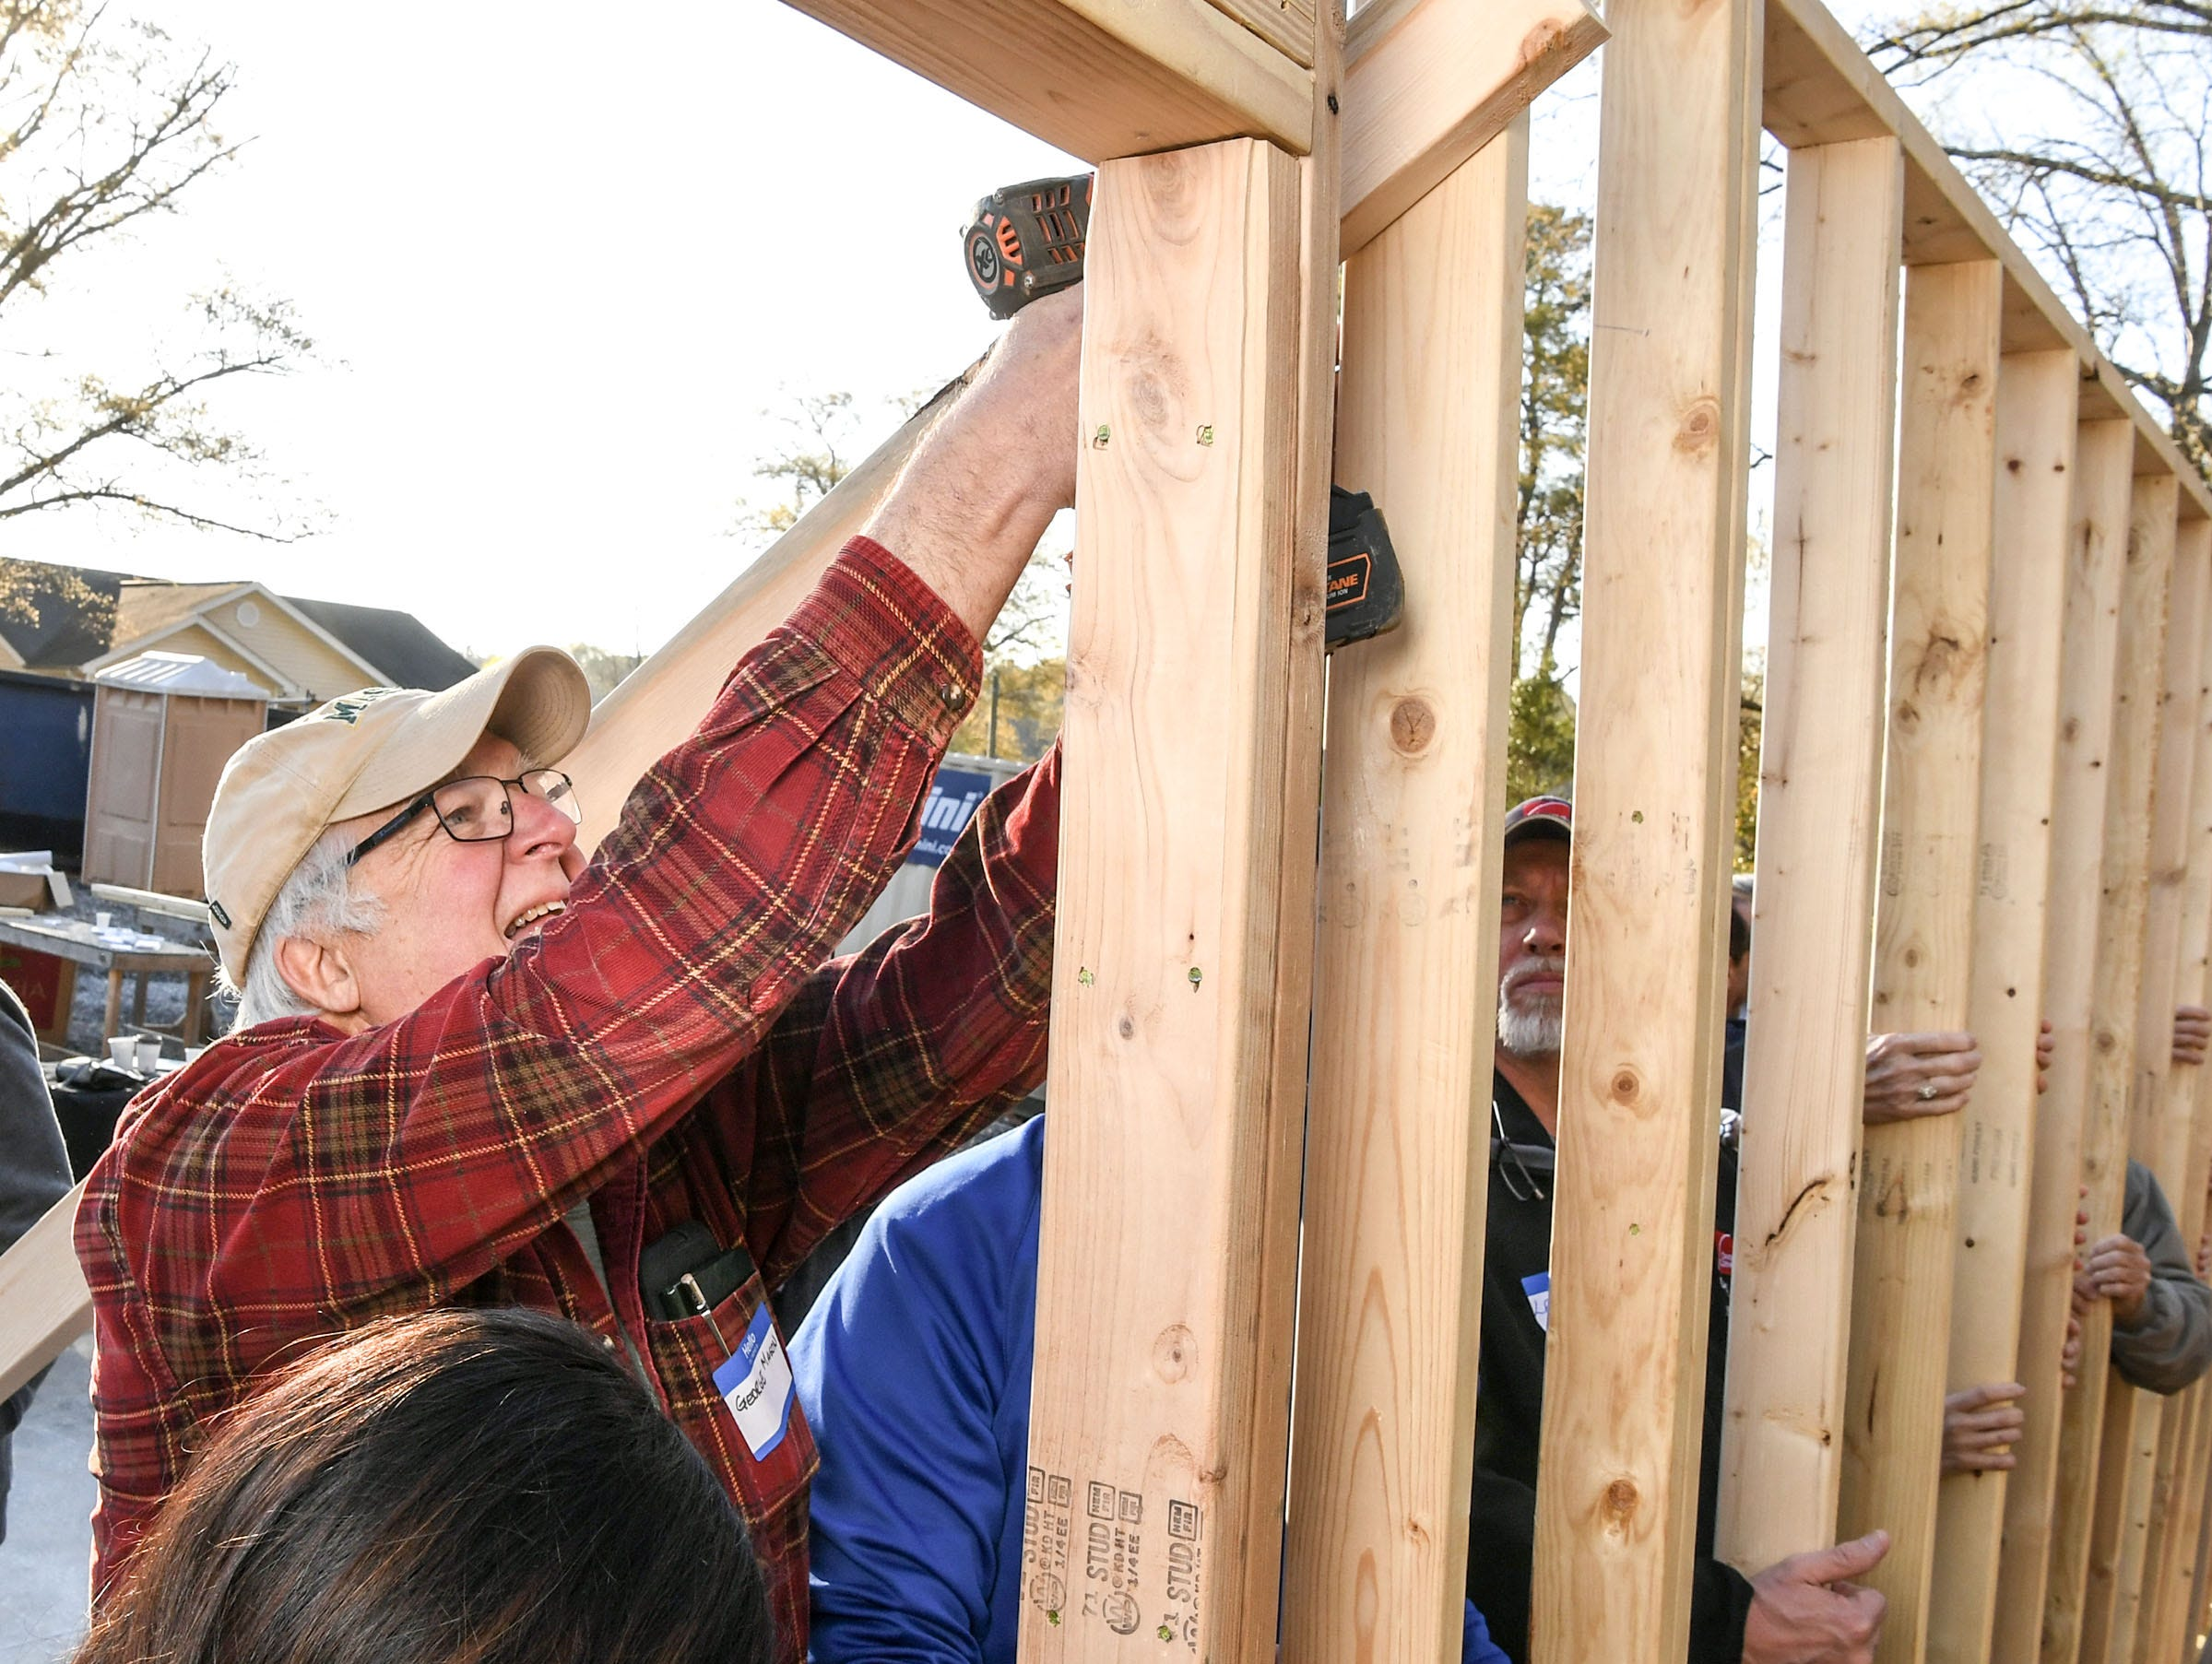 George Mason, retired board of directors and volunteer for Habitat for Humanity of Anderson County, helps raise a wall at a home build for new homeowner recipient Victoria Santos in Anderson Thursday. The home is the eighth on Melrose Place in Anderson since Clemson football players, including Deshaun Watson, helped built the first in the fall of 2015.